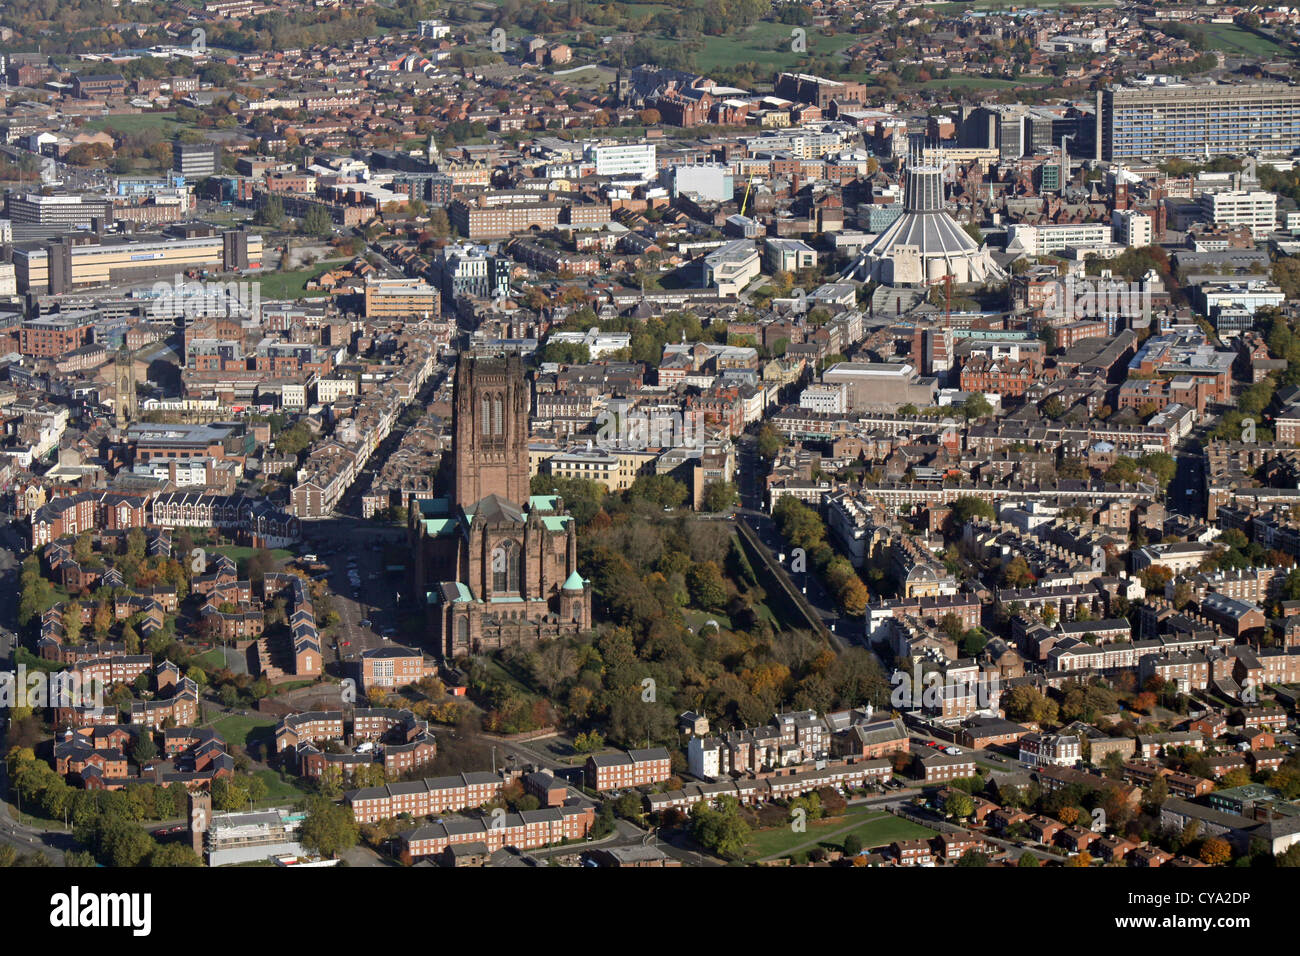 aerial view of Liverpool's two cathedrals, The Anglican and Catholic Metropolitan Cathedral of Christ the King - Stock Image